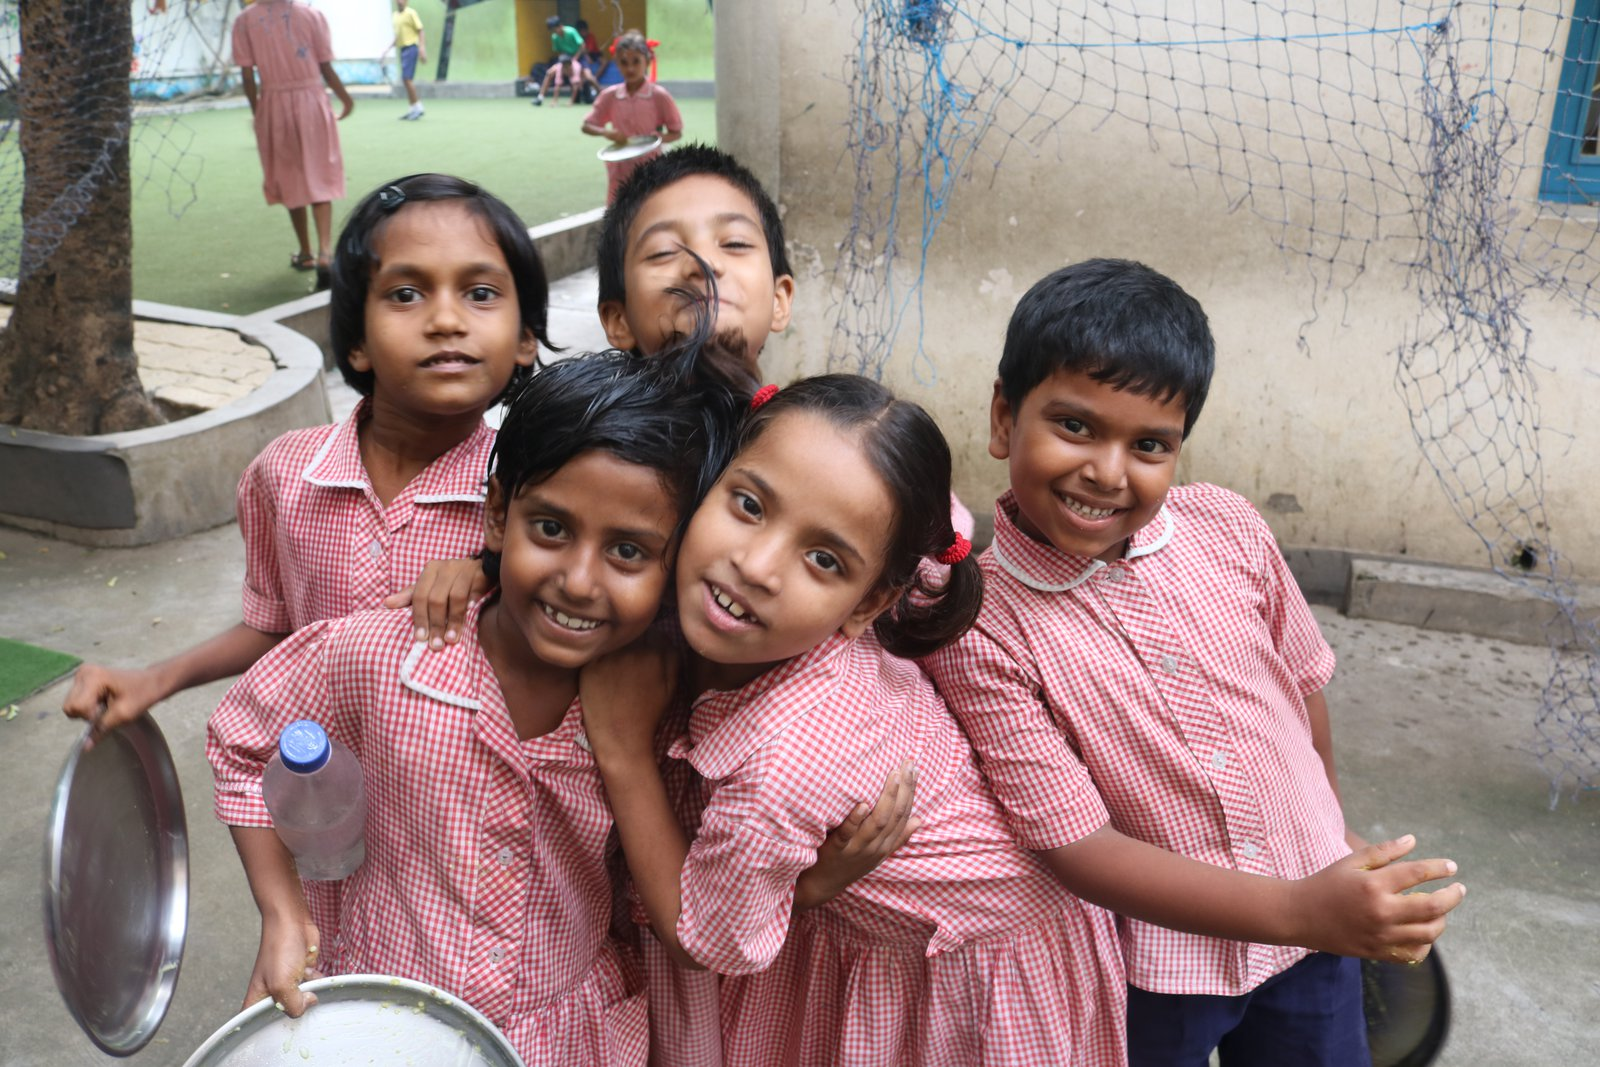 Some of the children being helped by the Future Hope Charity in Kolkata, India.